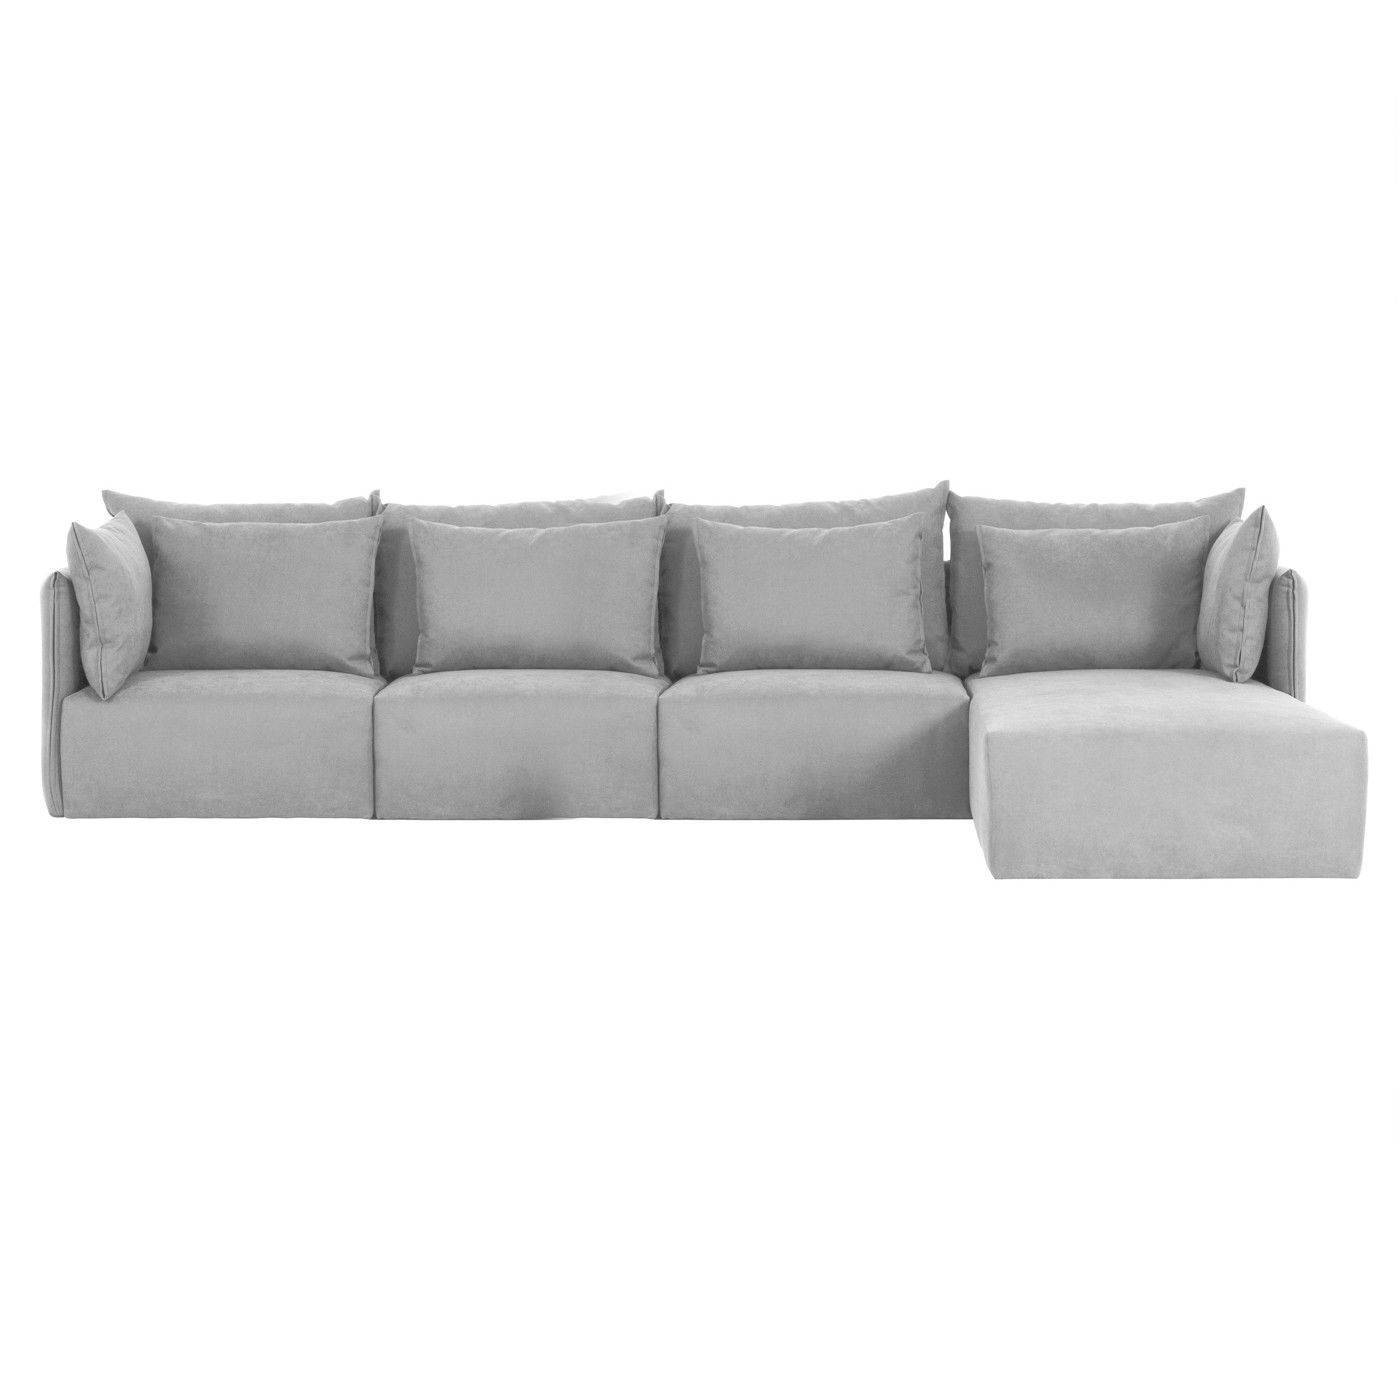 Corner Sofa / Contemporary / Fabric / 4-Seater - Dune - Temahome within 4 Seater Couch (Image 10 of 30)